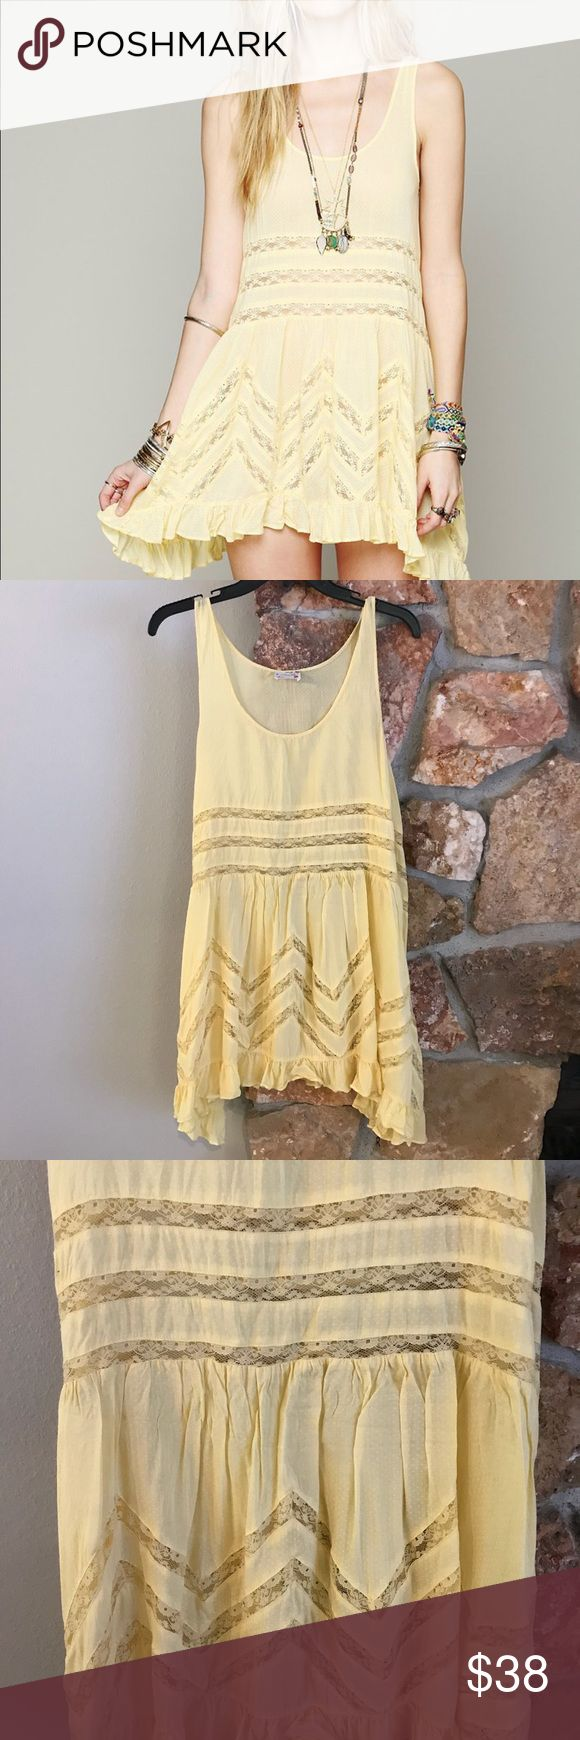 Free People Trapeze dress EUC, pale yellow voile and lace trapeze dress by Free People. Perfect piece for layering. Free People Dresses Mini